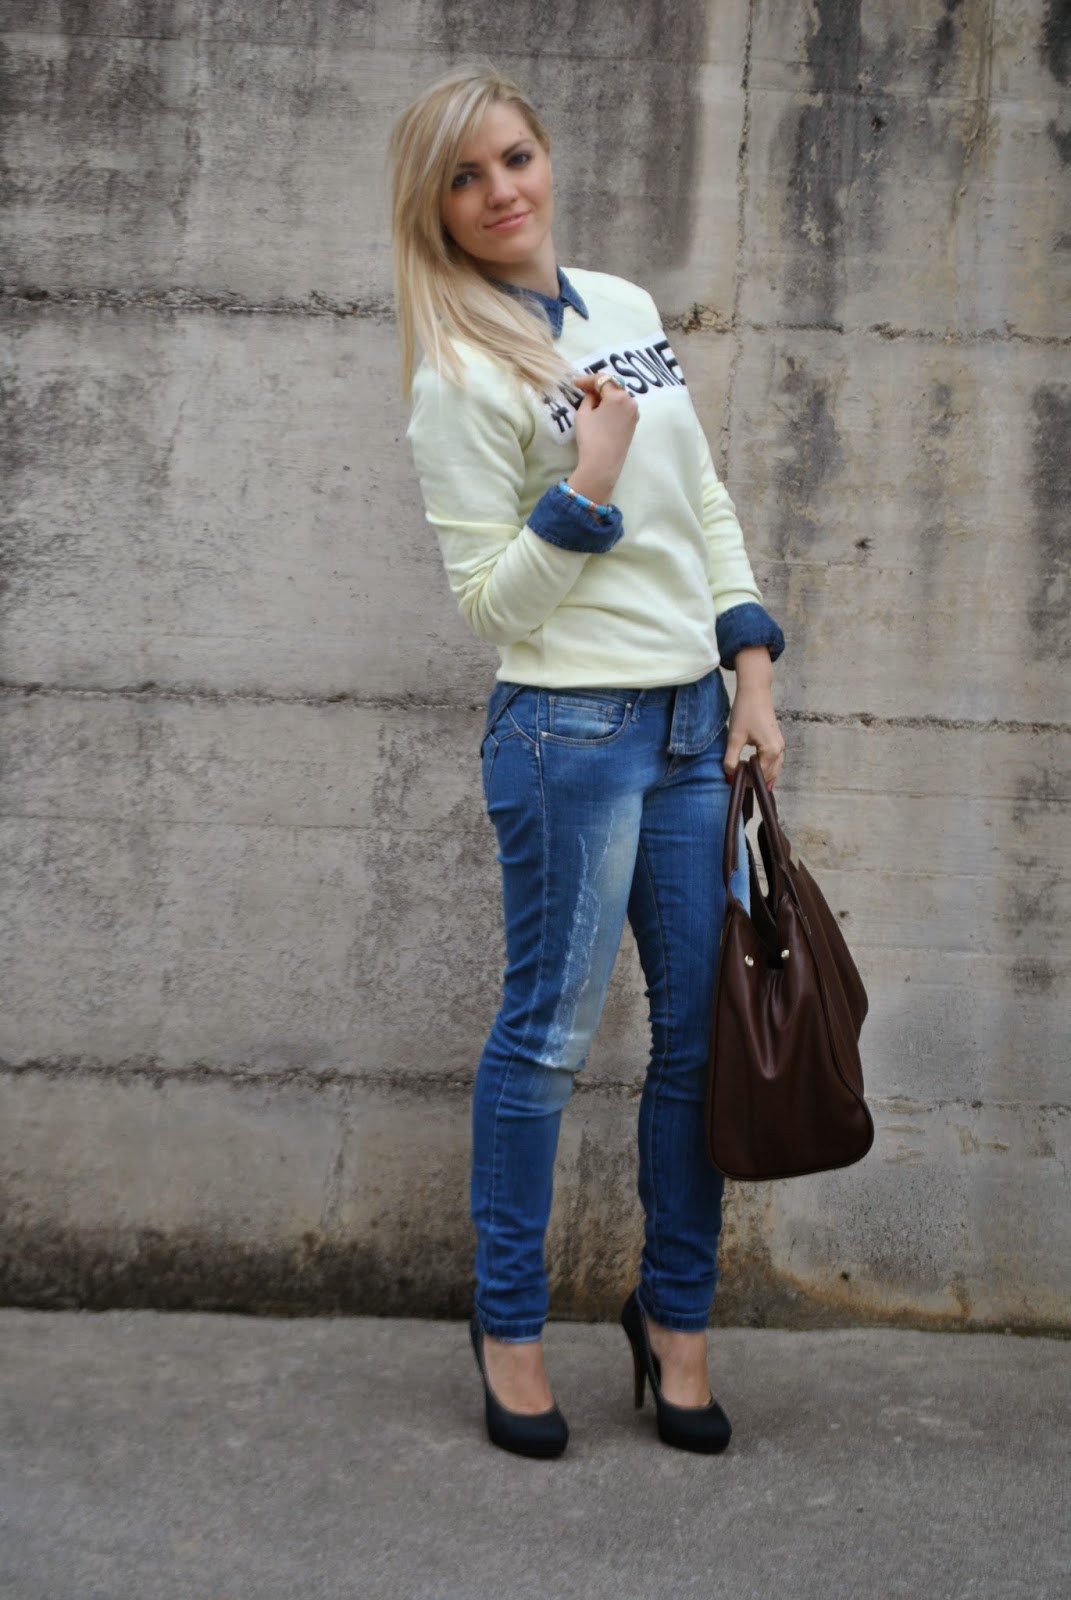 come abbinare il giallo outfit felpa gialla outfit jeans e camicia denim total look total look jeans camicia jeans felpa gialla awesome mariafelicia magno colorblock by felym mariafelicia magno fashion blogger outfit jeans skinny outfit camicia jeans come abbinare il giallo outfit giallo felpa gialla scarpe in denim borsa pelle marrone elisabetta franchi outfit aprile 2015 outfit casual primaverili outfit donna primaverili outfit jeans e tacchi come abbinare jeans e tacchi how to wear jeans and heels yellow outfit how to wear yellow blonde girls spring casual outfit spring outfit april outfit fashion blogger italiane fashion bloggers italy fashion blog italiani blogger italiane di moda ragazze bionde anello ysl majique pimkie milano look book street style